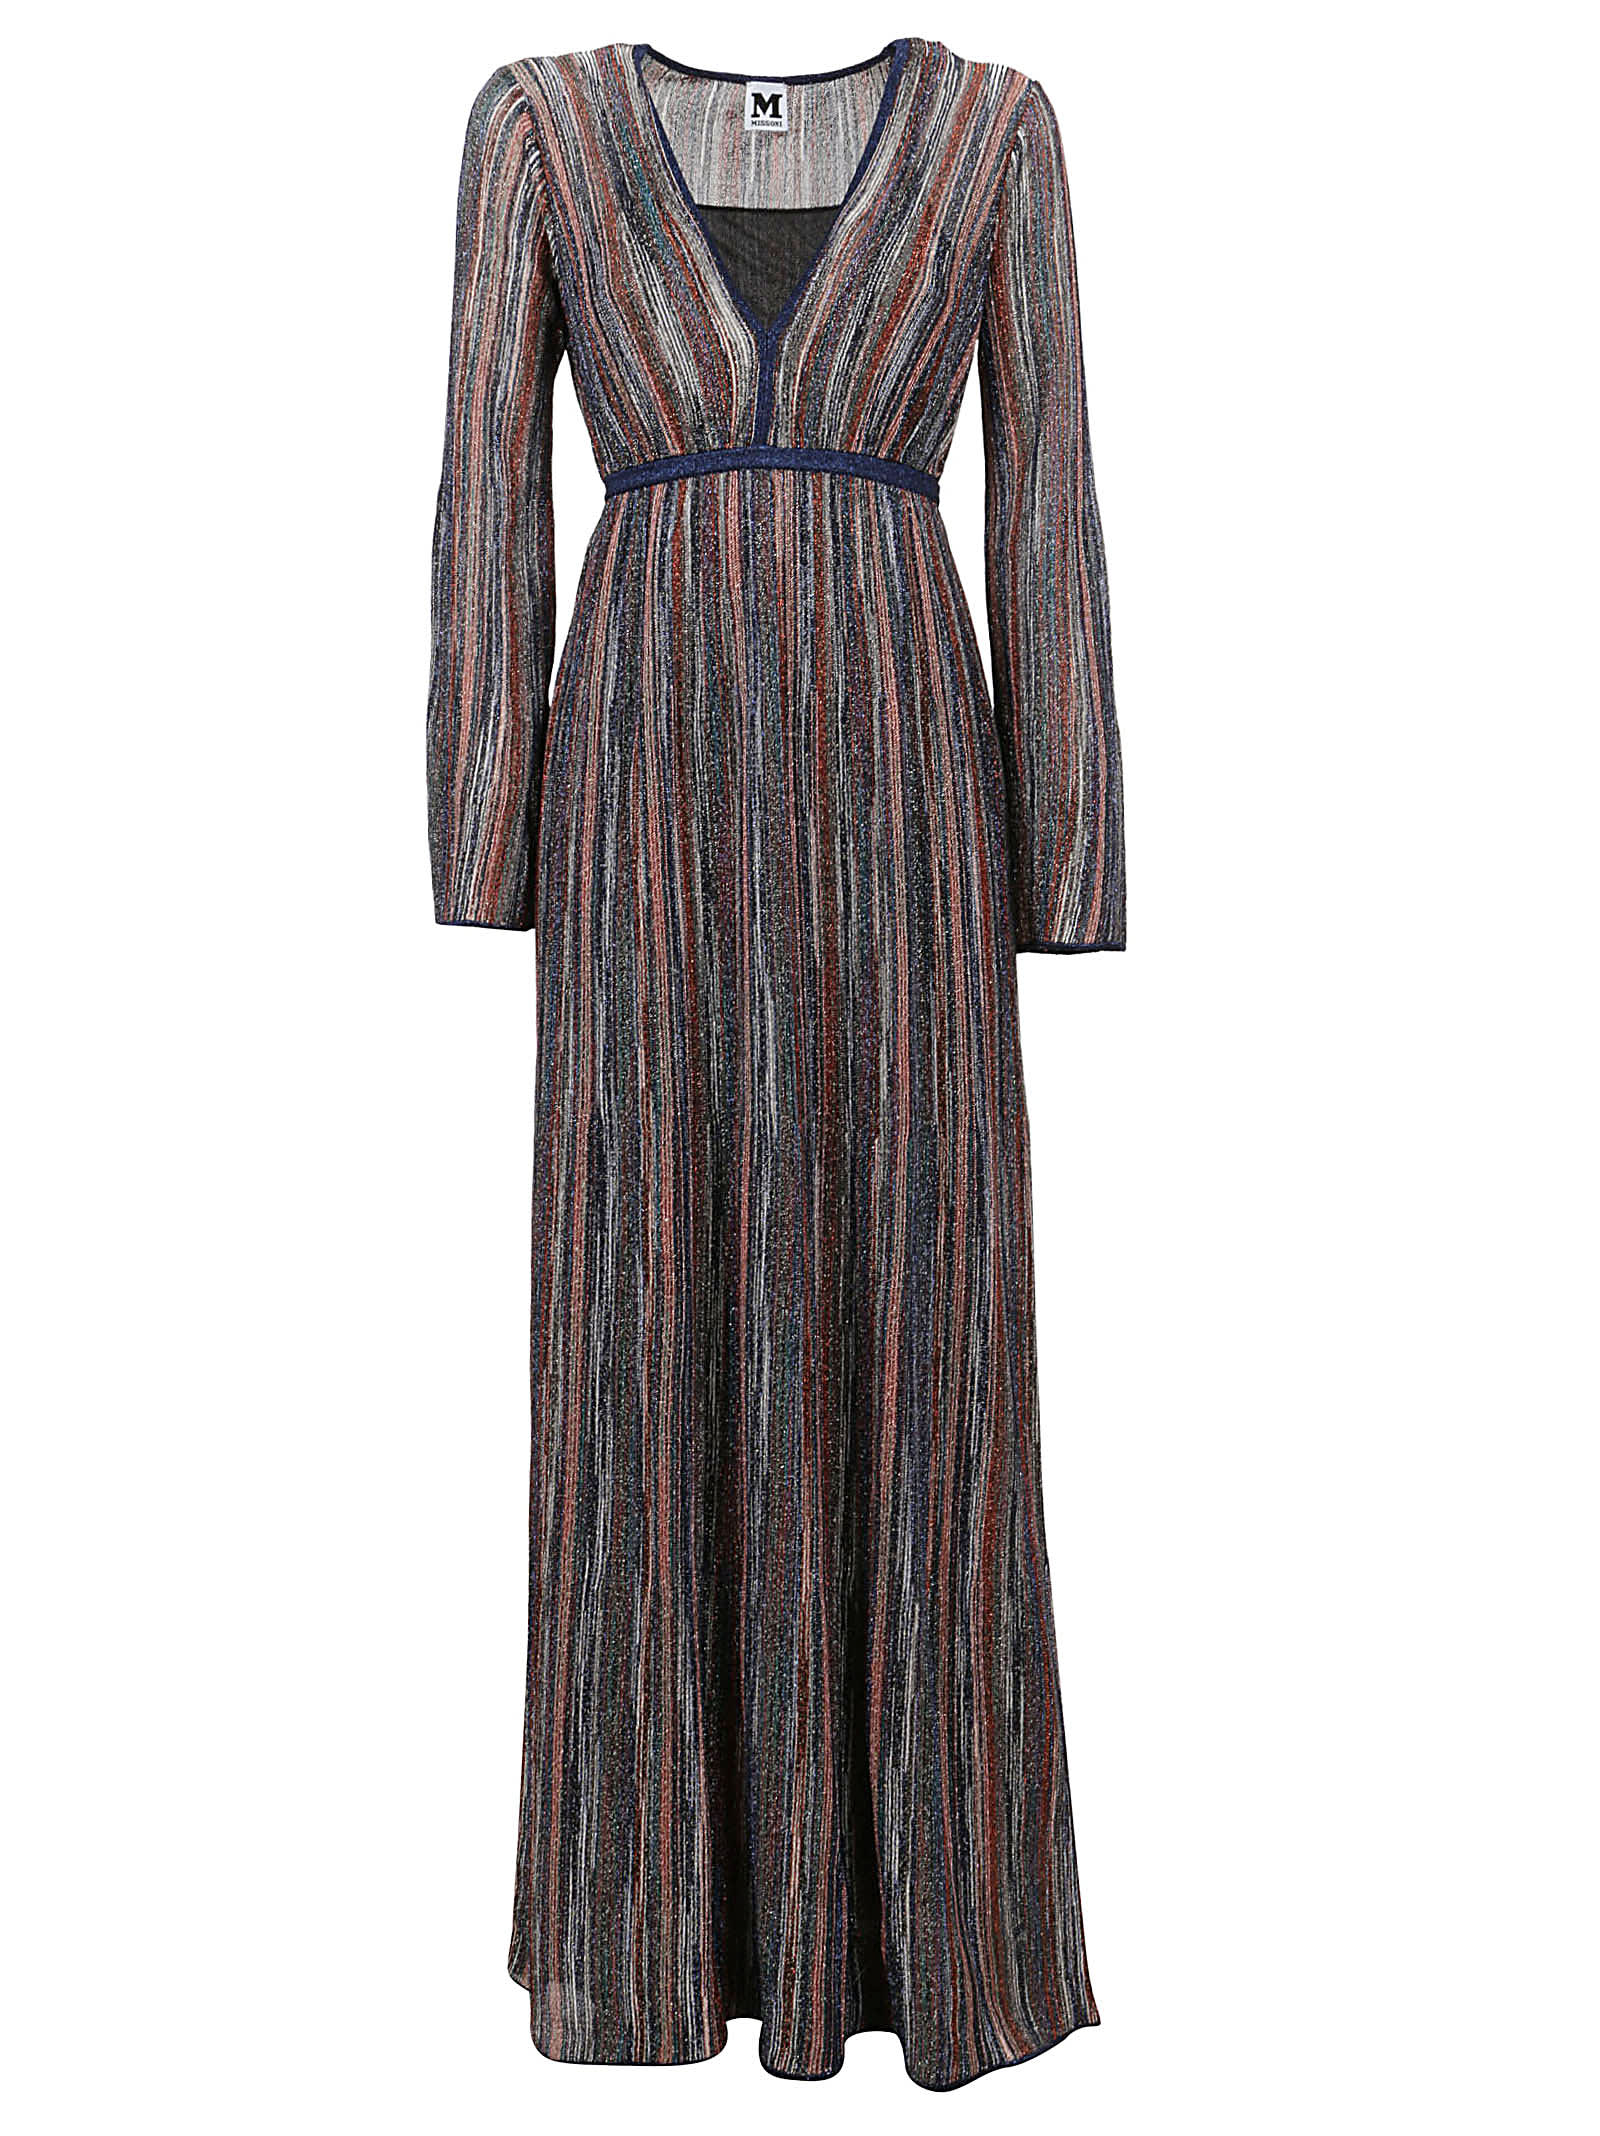 Multicolor Striped Lurex Dress